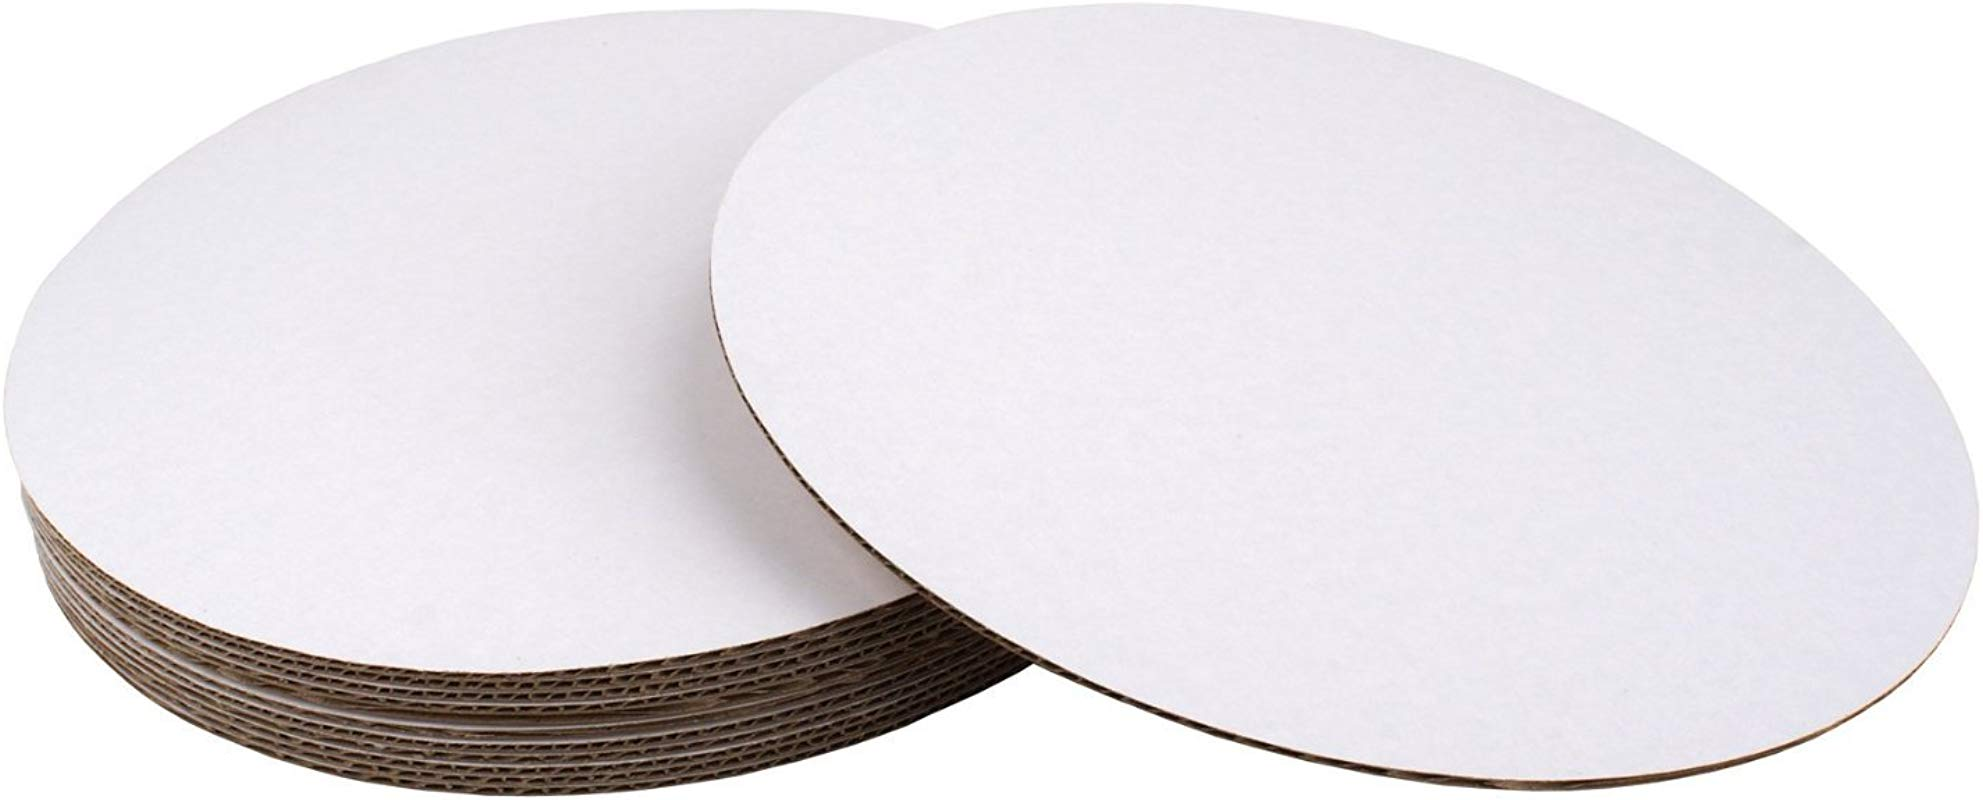 10 Round Coated Cakeboard 100 Ct